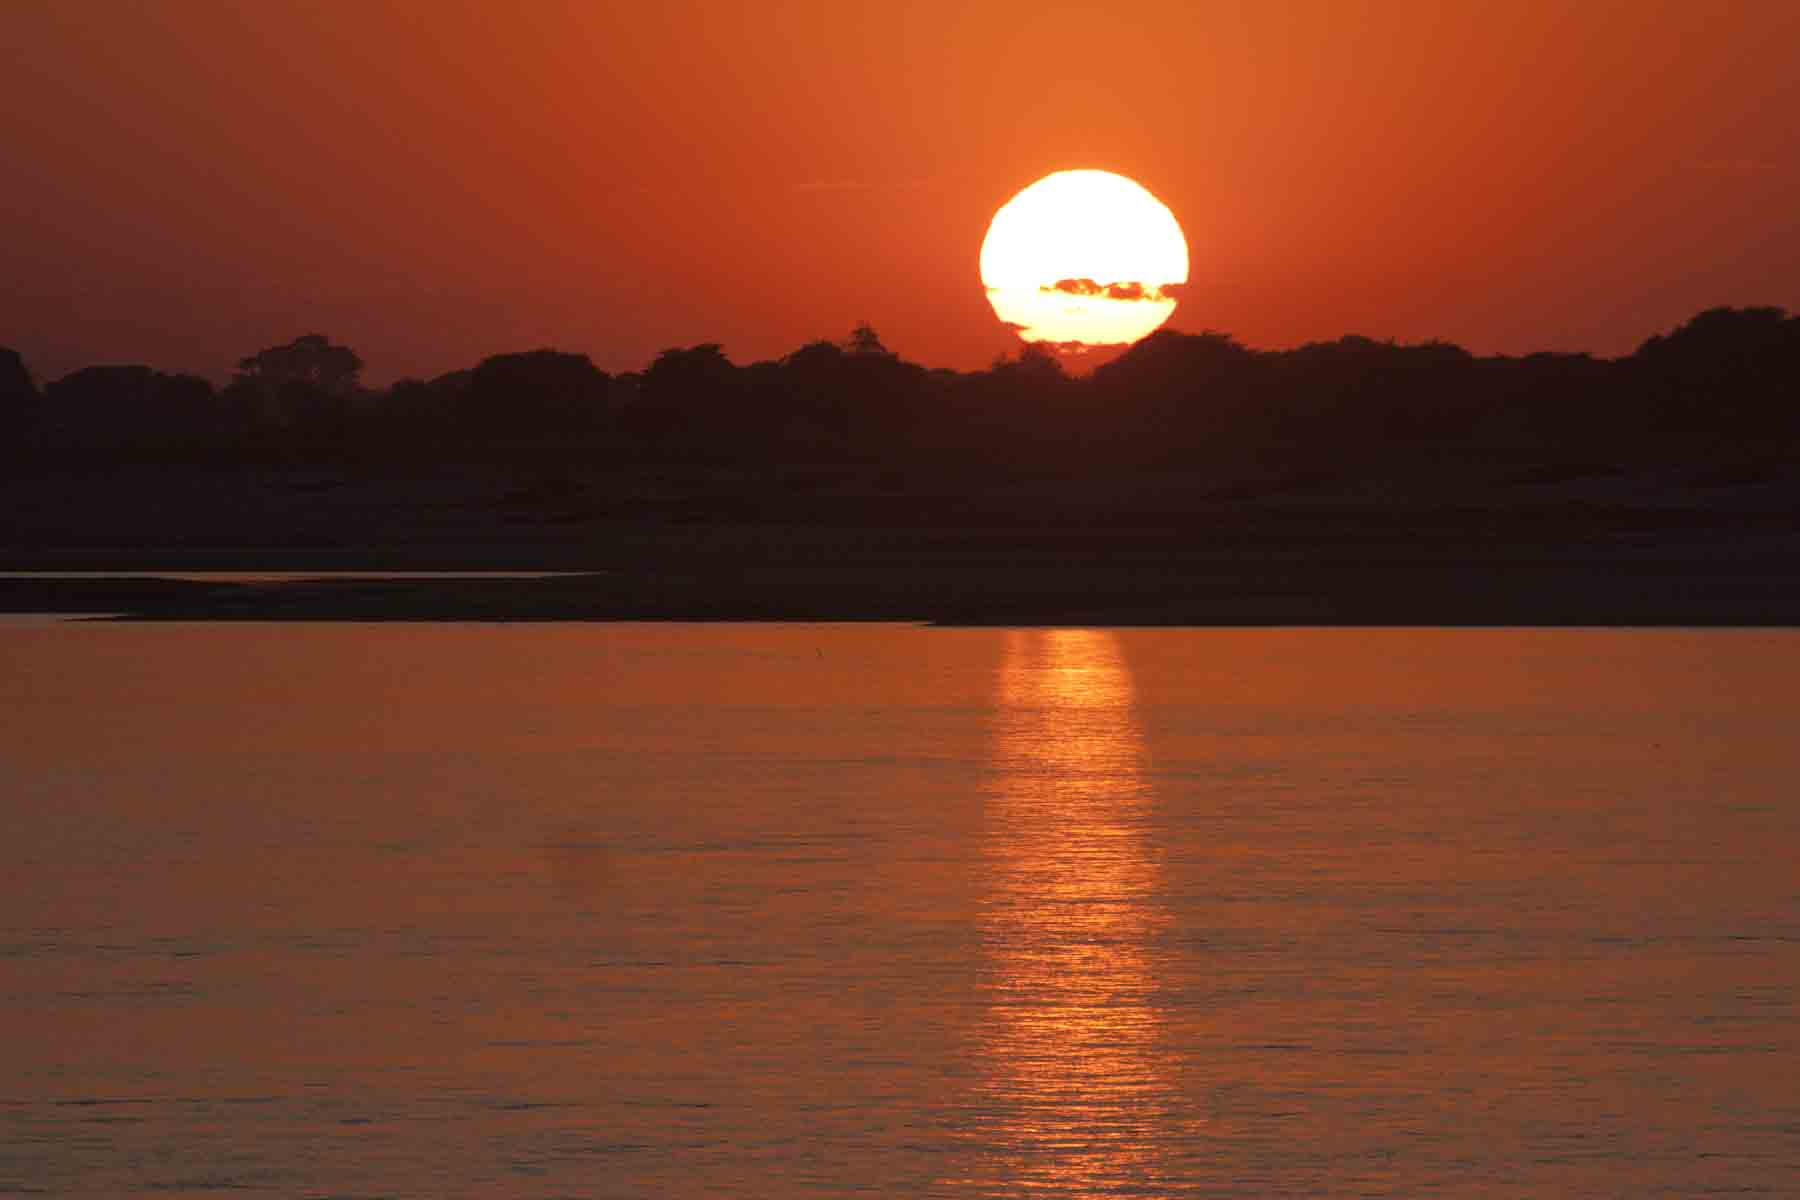 Sunset on the Irrawaddy